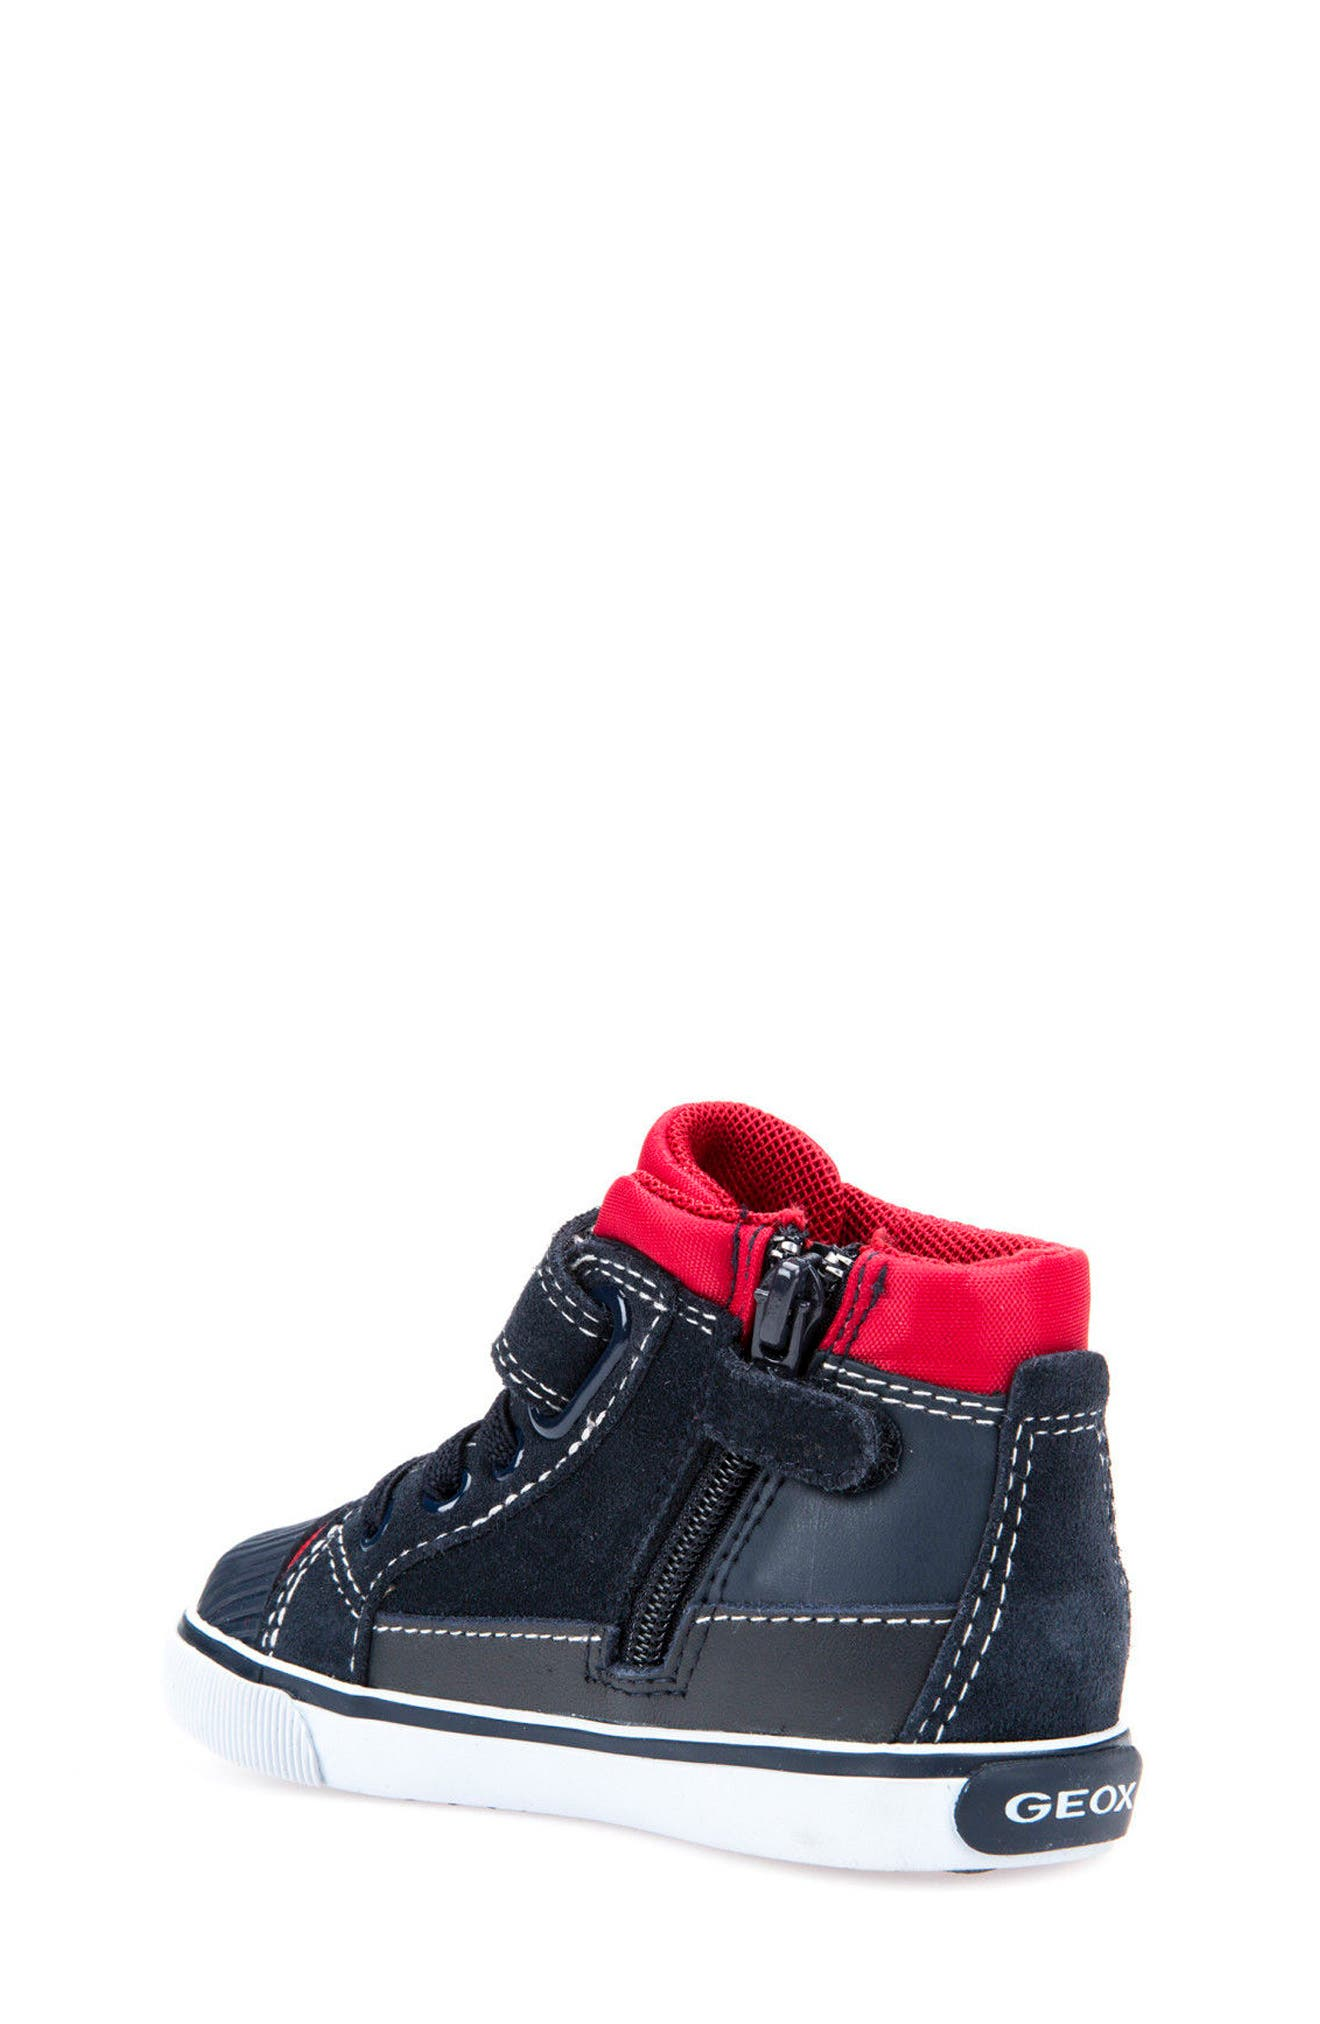 Kiwi Boy High Top Sneaker,                             Alternate thumbnail 2, color,                             Navy/ Red